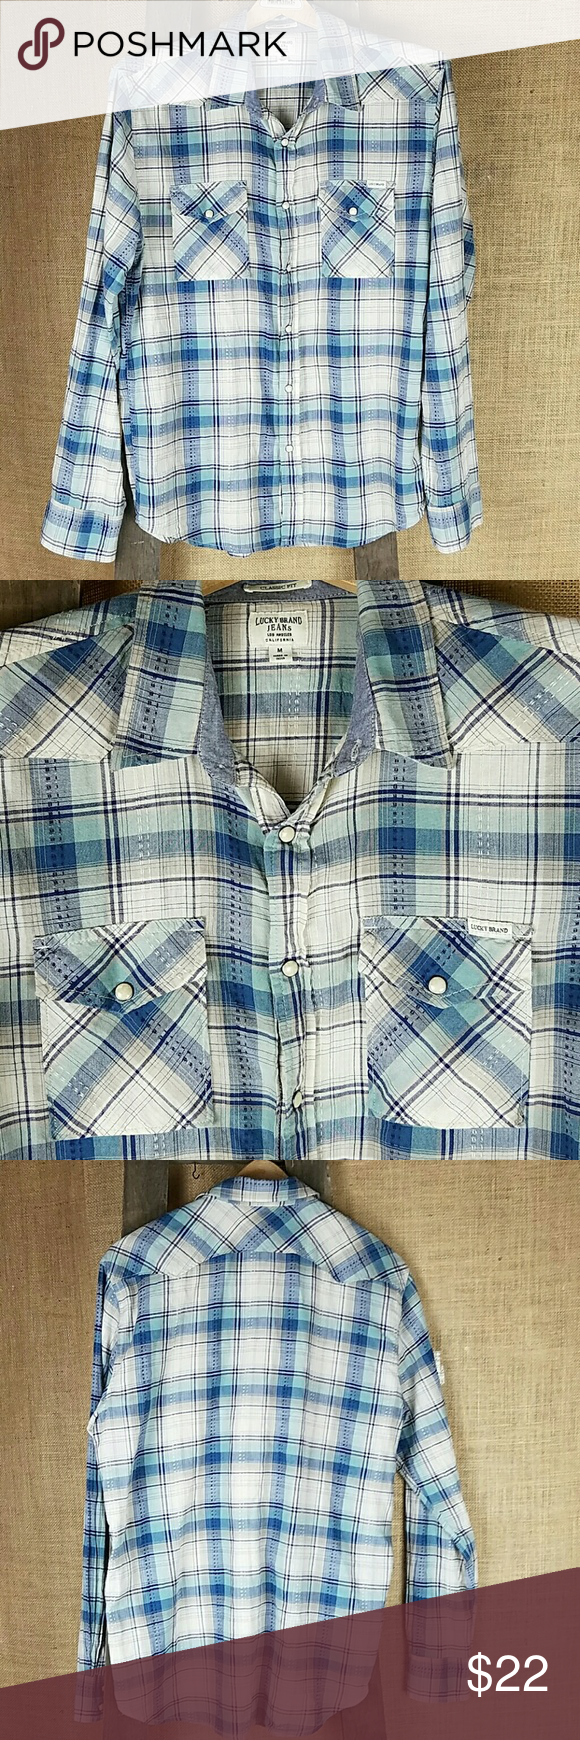 Lucky brand womenus m classic fit pearl snap plaid western shirts